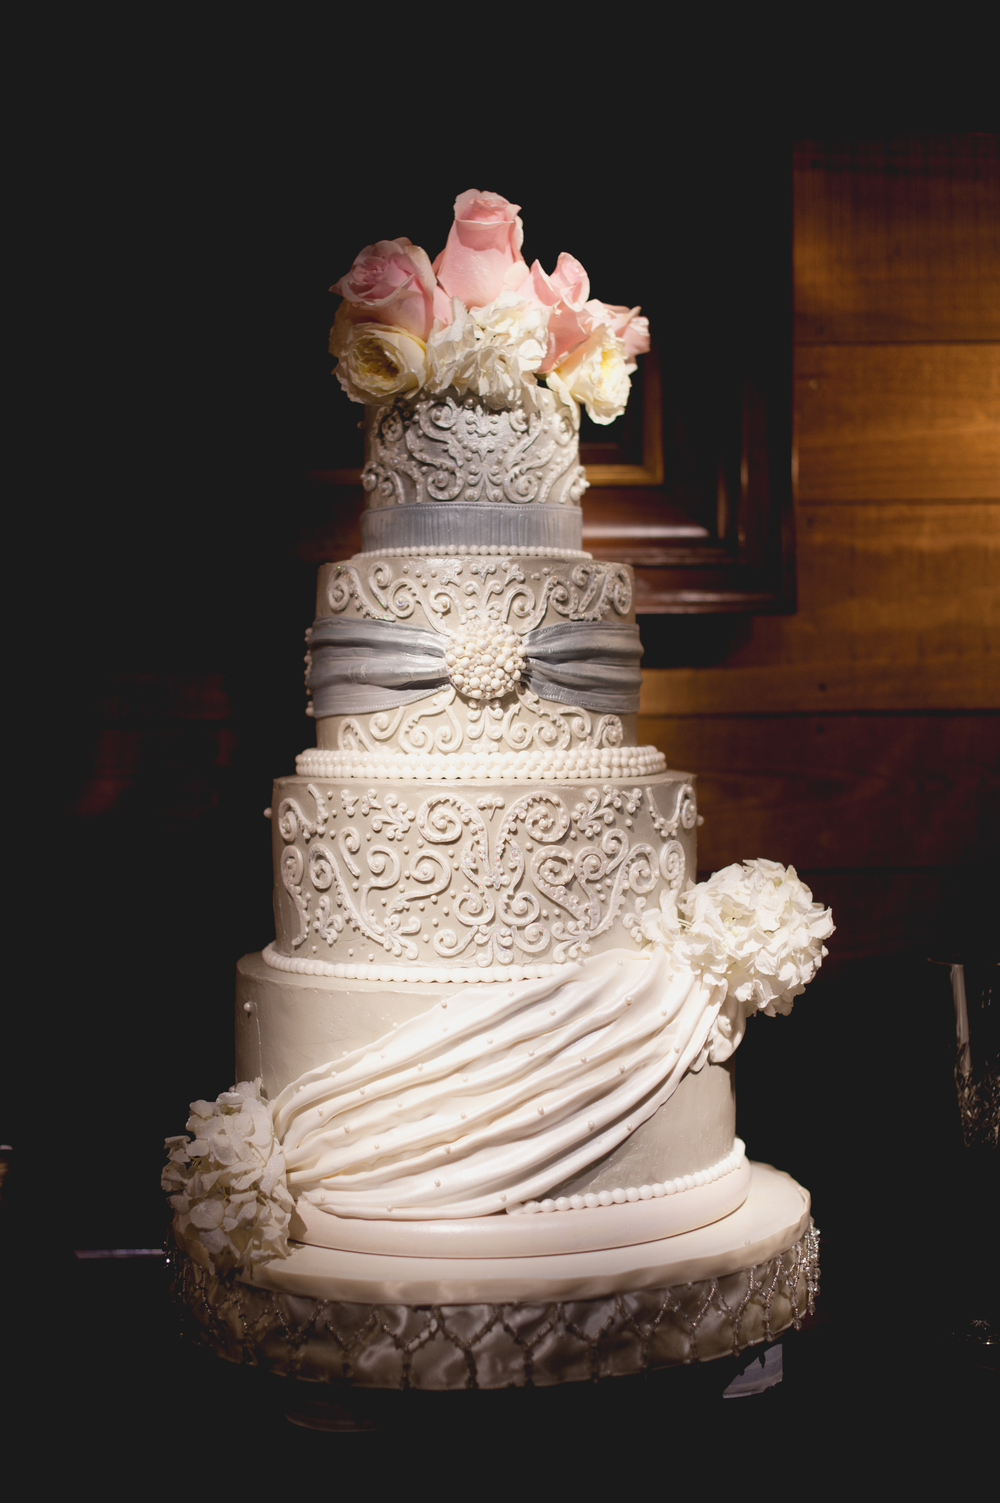 Wedding Cake inspired by bride's dress